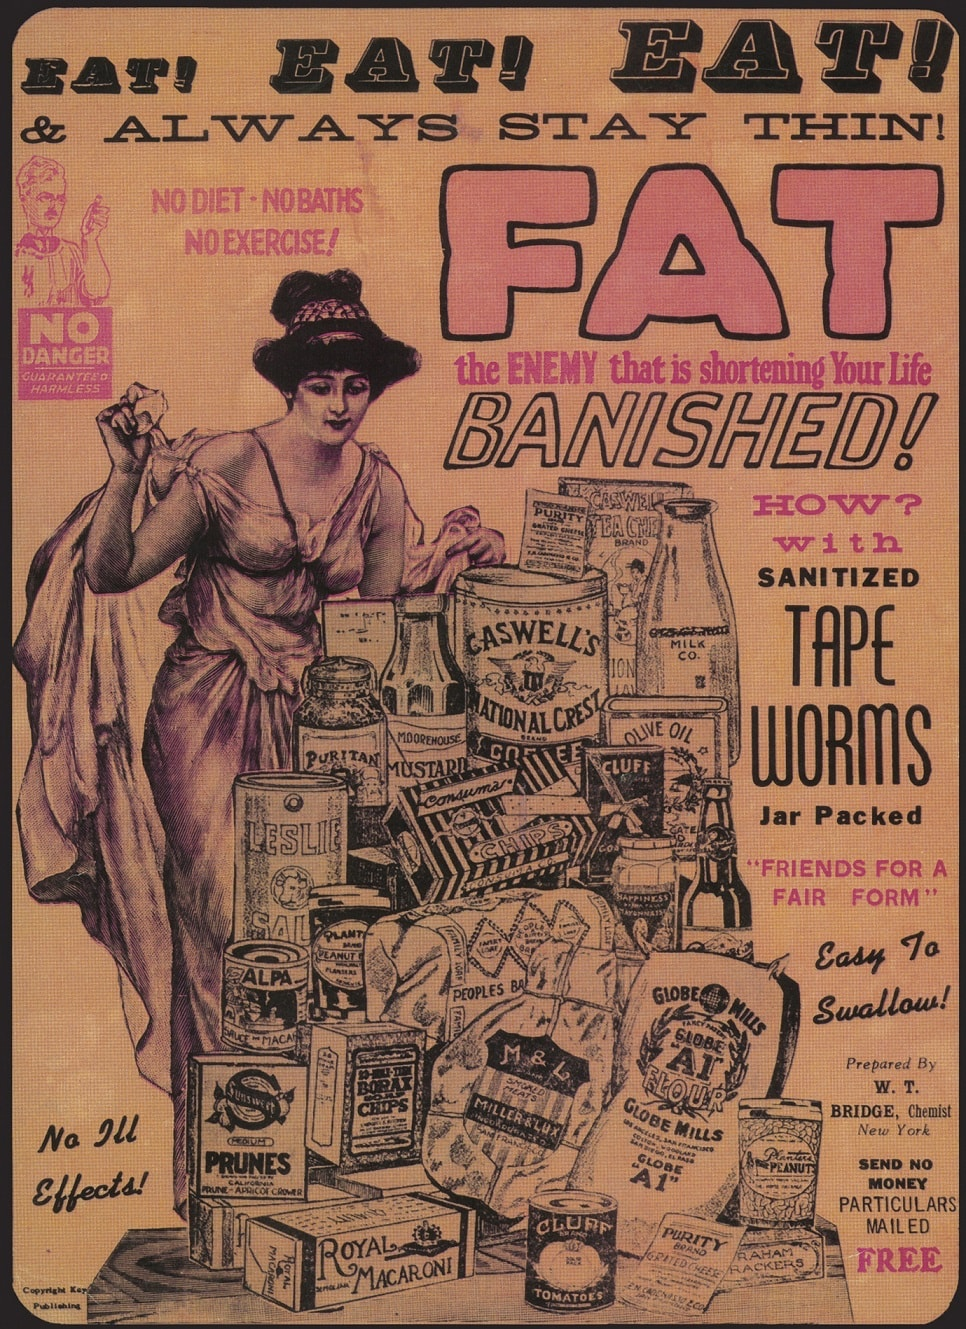 advertisement for tape worms as weight loss treatment